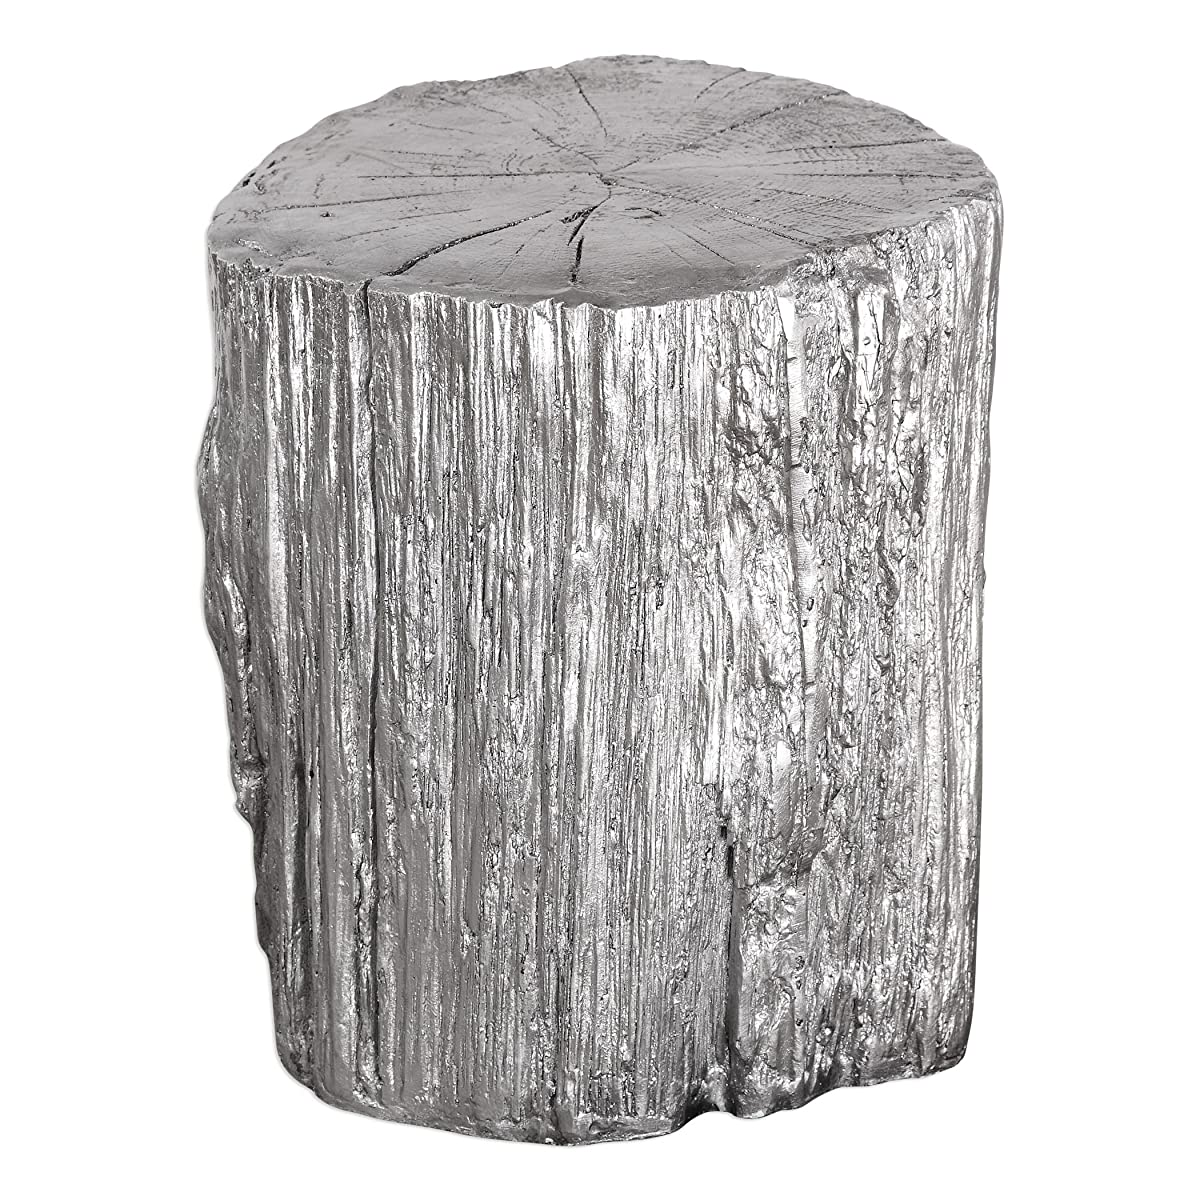 Elegant Silver Tree Stump Accent Table | Pedestal Round Faux Bois Trunk Naturalist